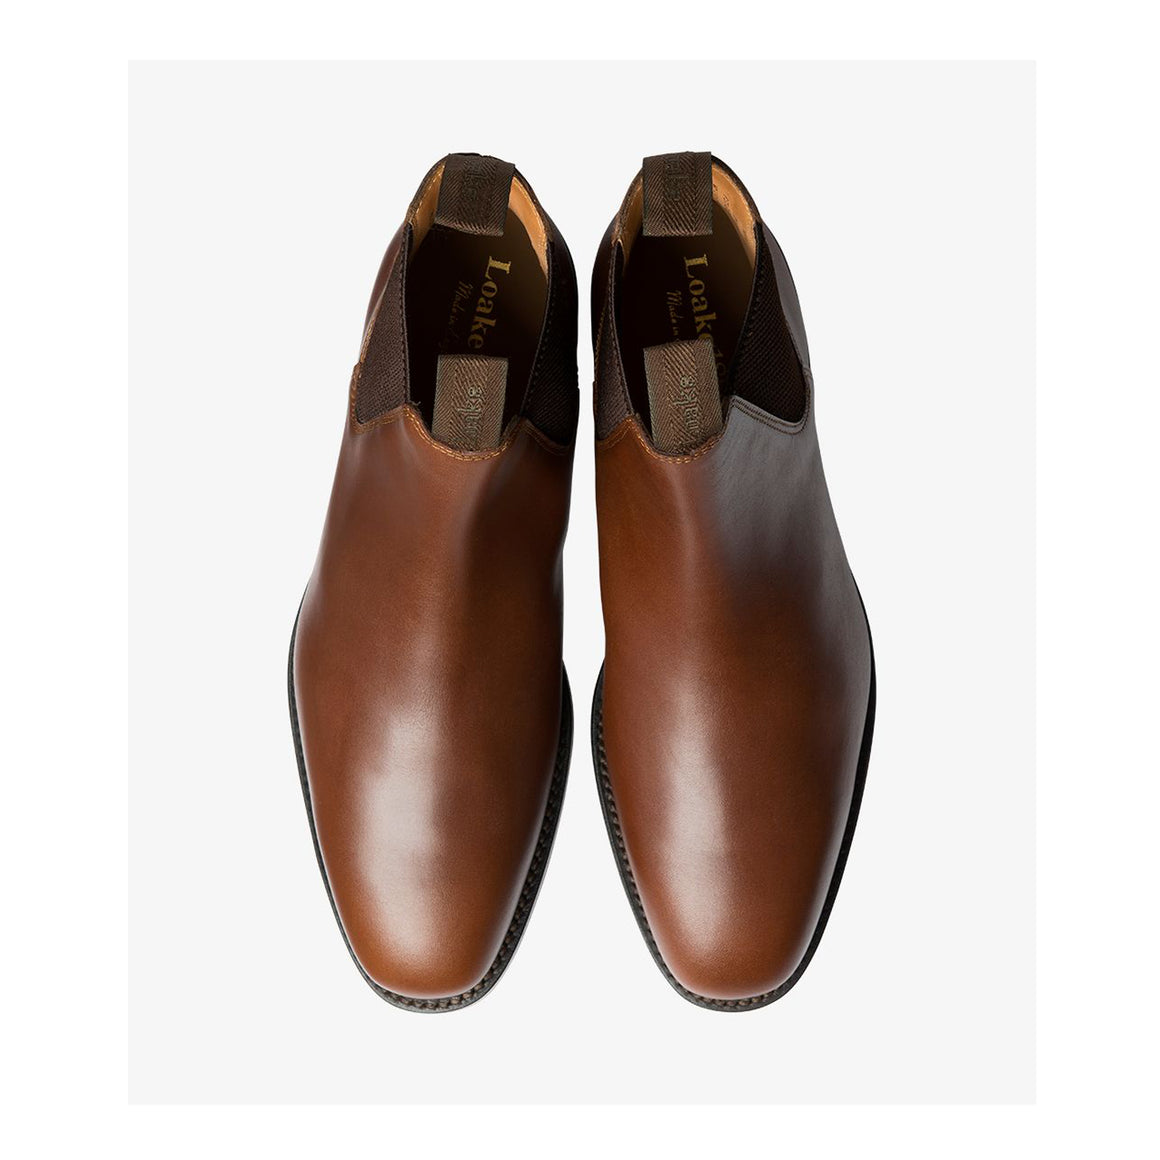 Chatsworth Dainight Shoe for Men in Brown